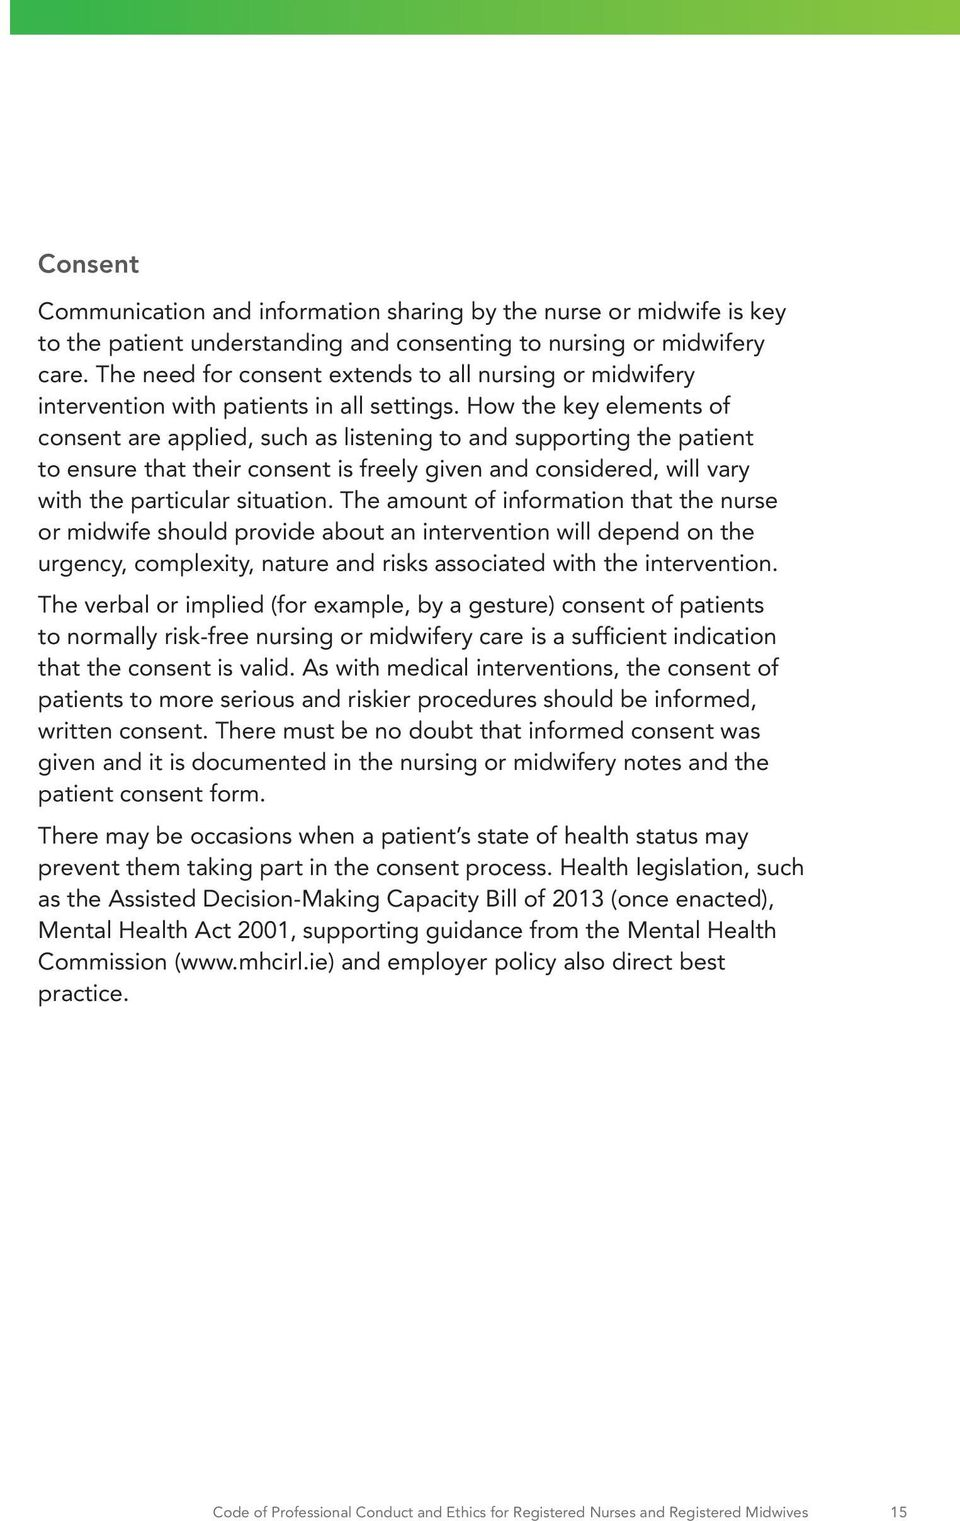 How the key elements of consent are applied, such as listening to and supporting the patient to ensure that their consent is freely given and considered, will vary with the particular situation.